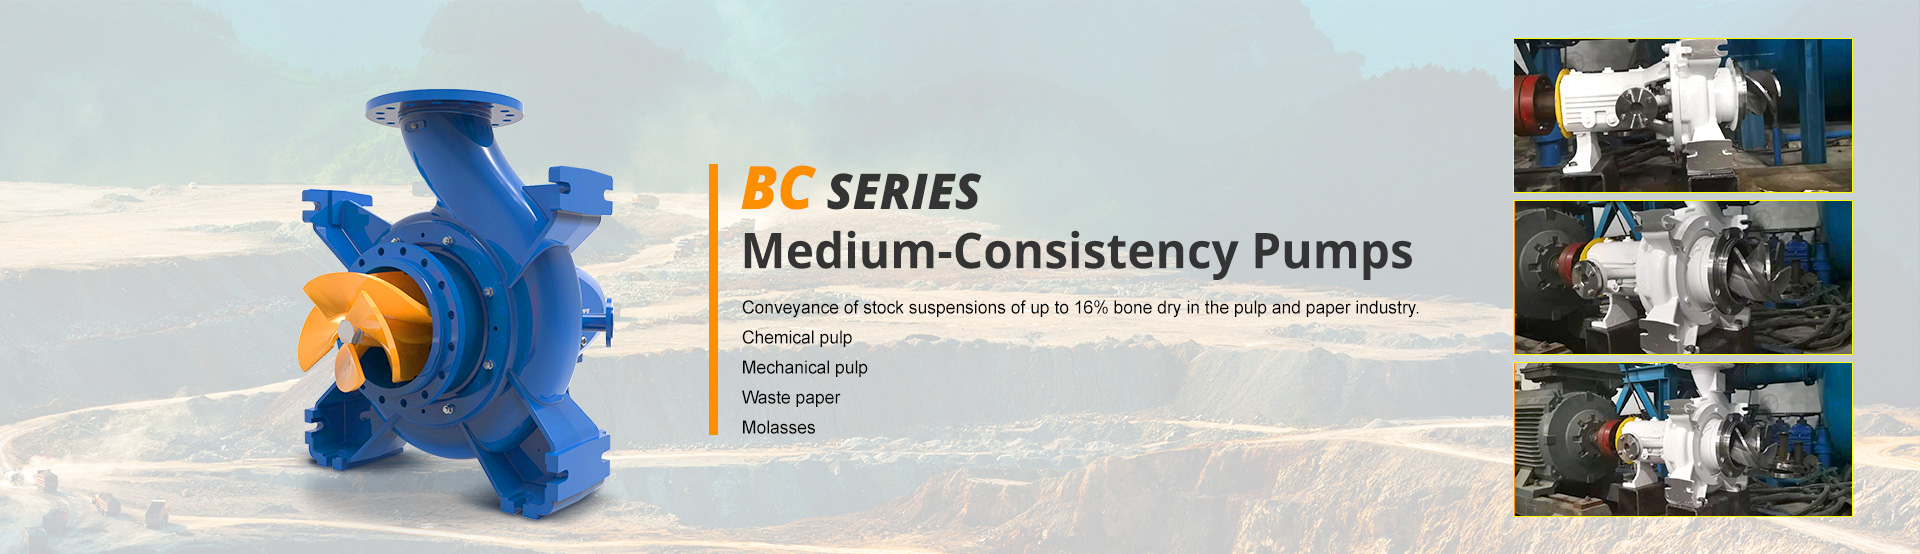 BC series  Medium-Consistency Pumps